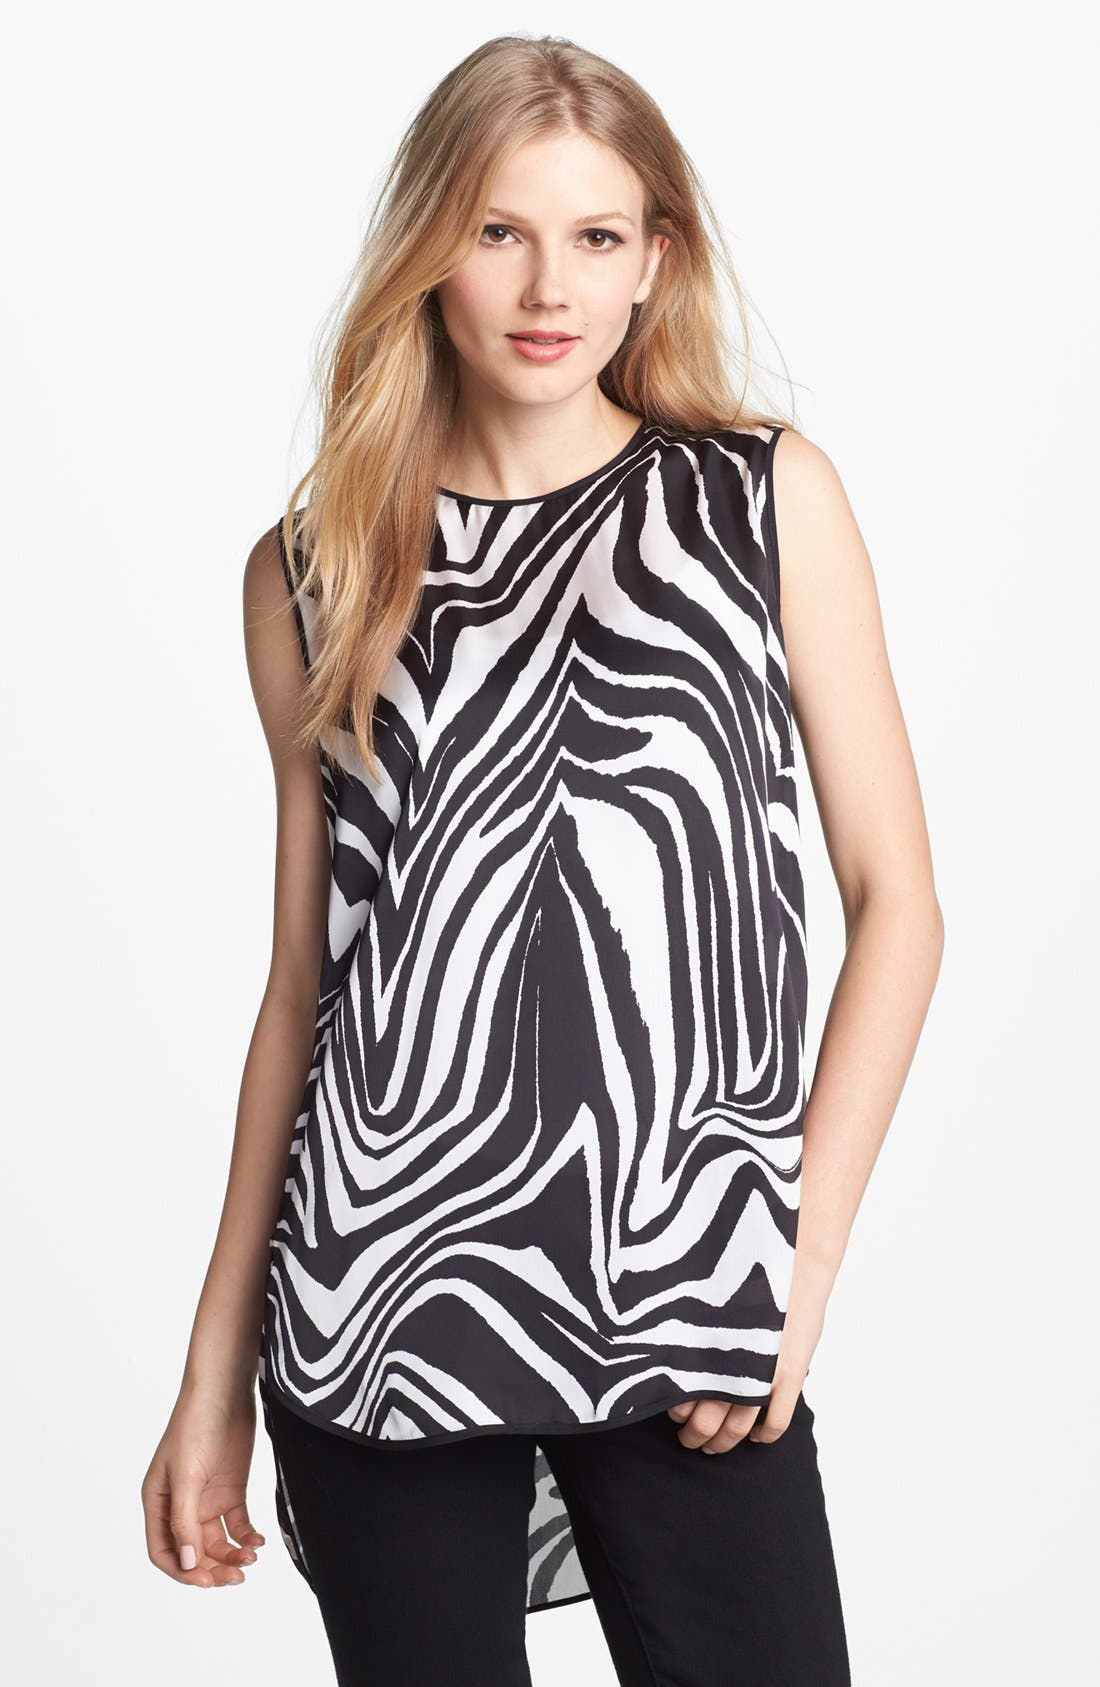 Alternate Image 1 Selected - Vince Camuto Zebra Print High/Low Sleeveless Blouse